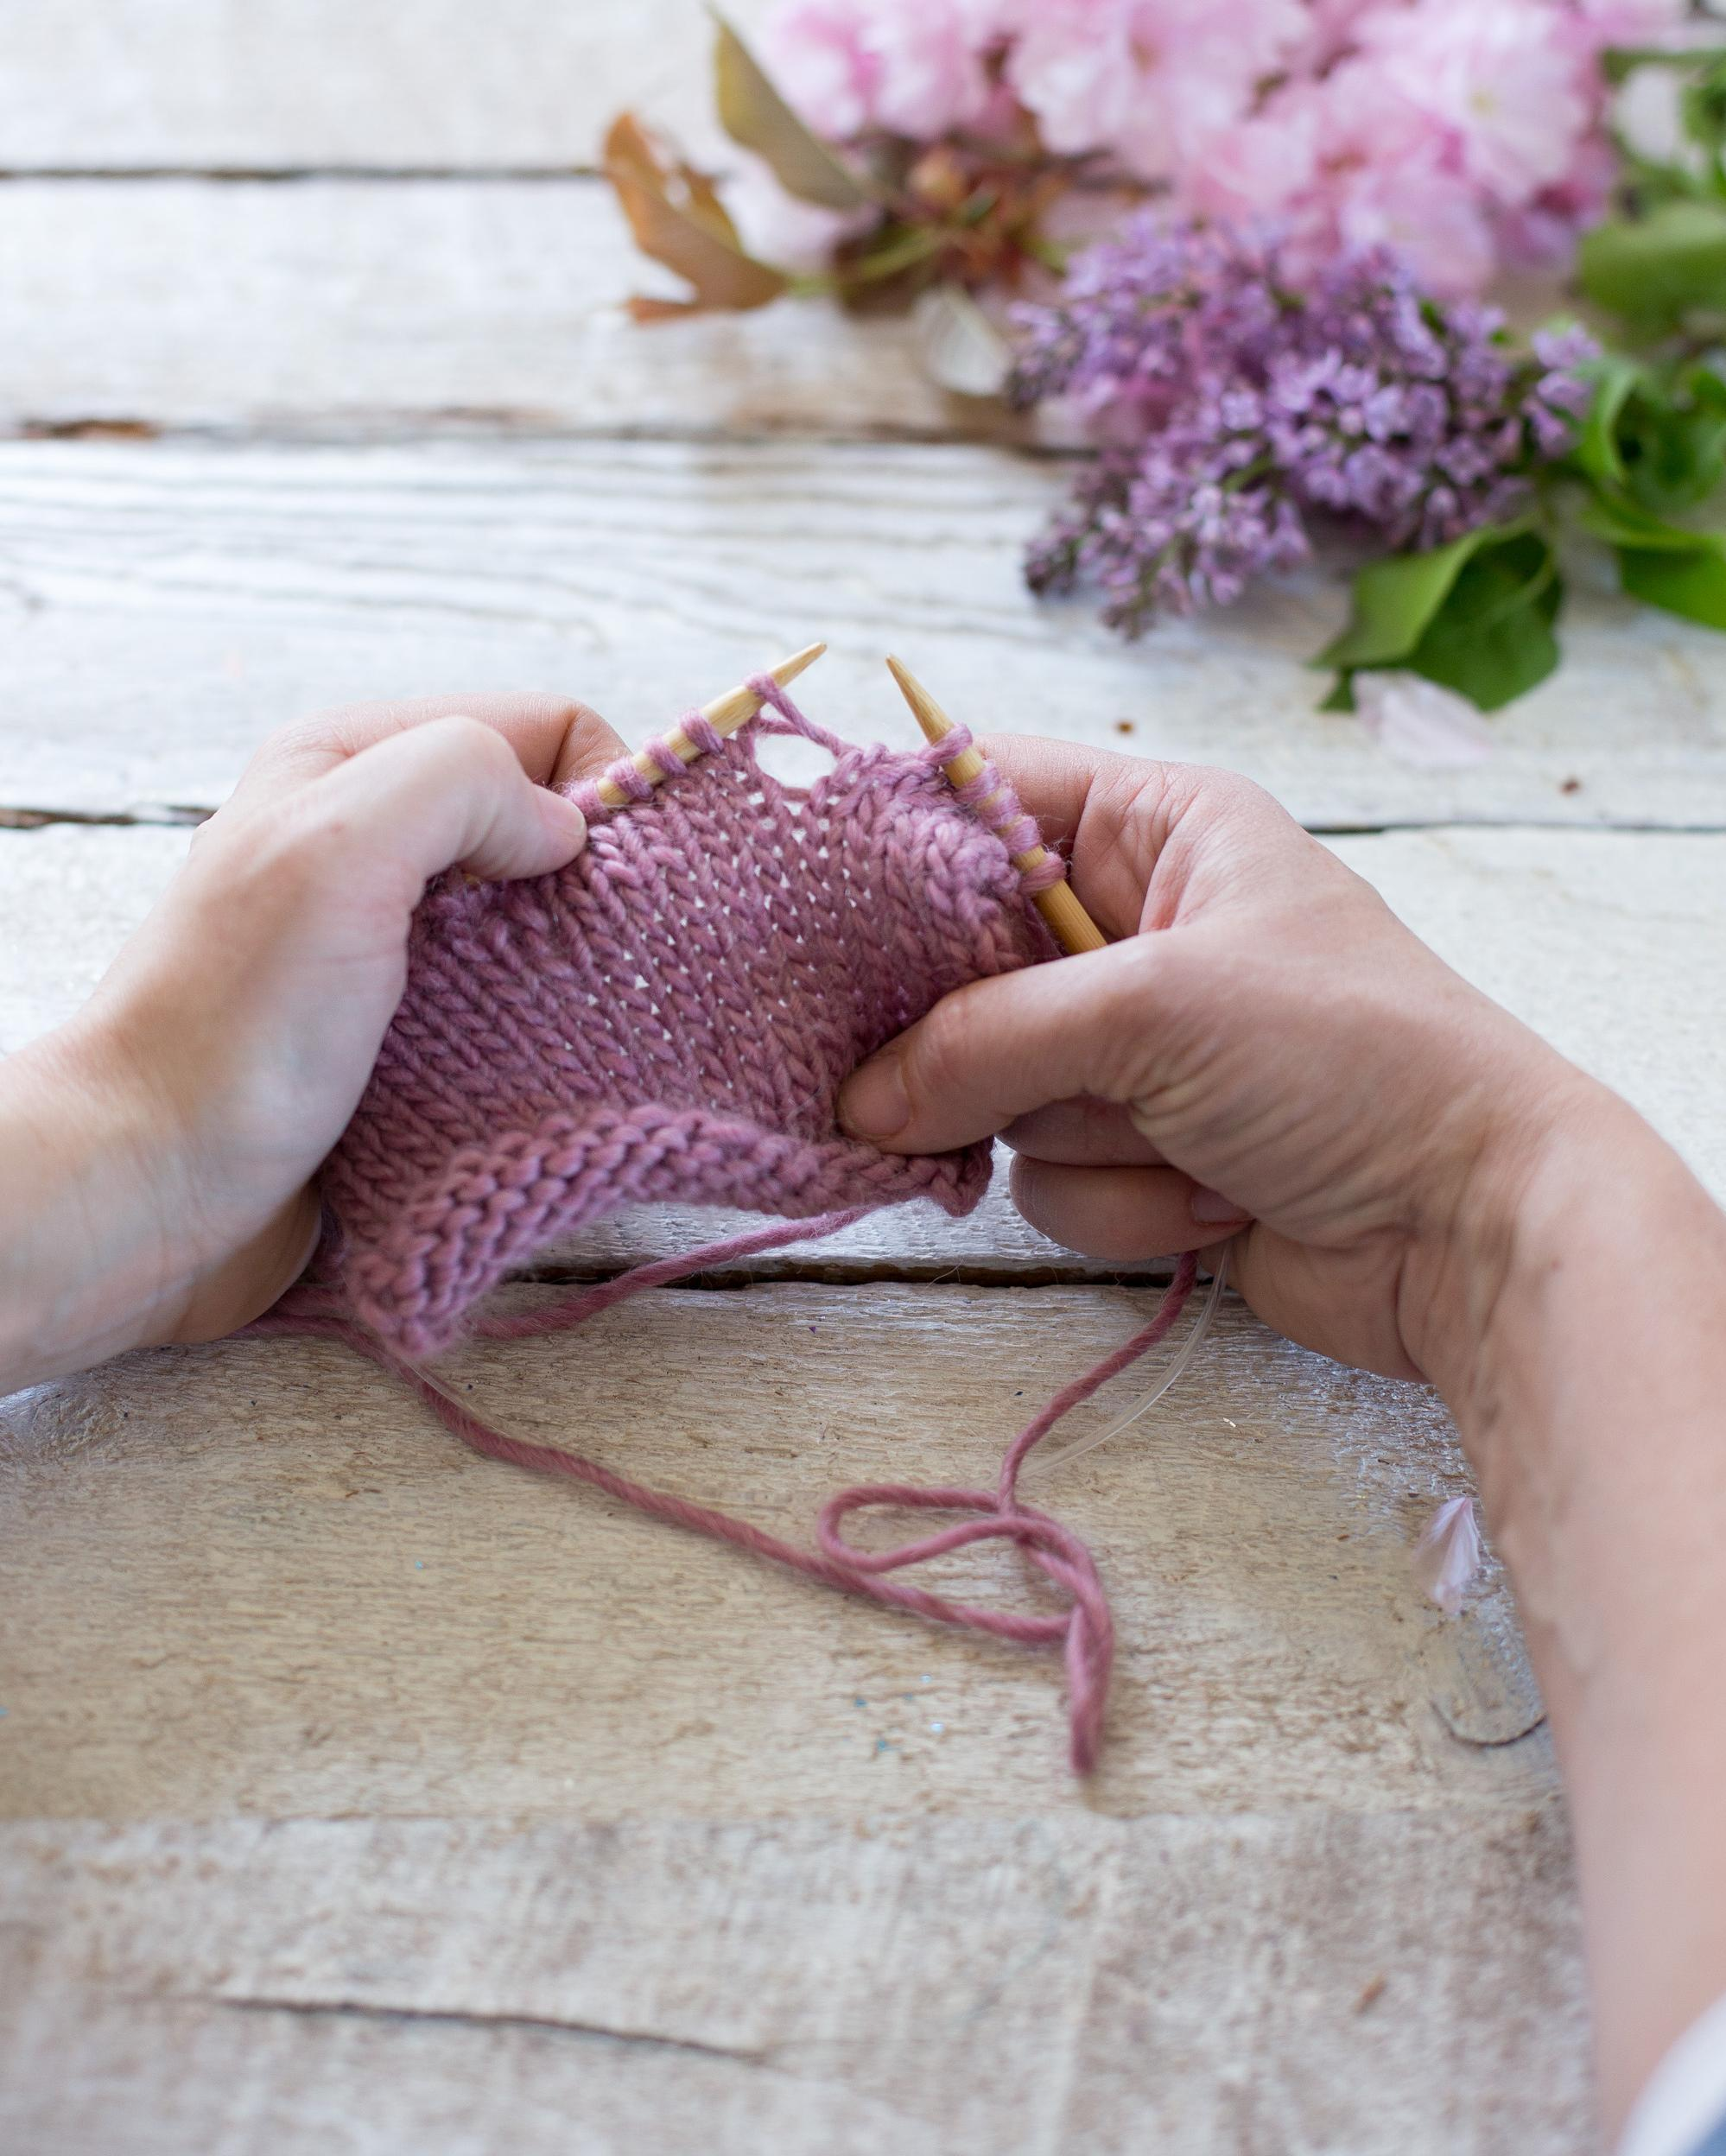 4 Common Knitting Mistakes And How To Fix Them Quickly Martha Stewart